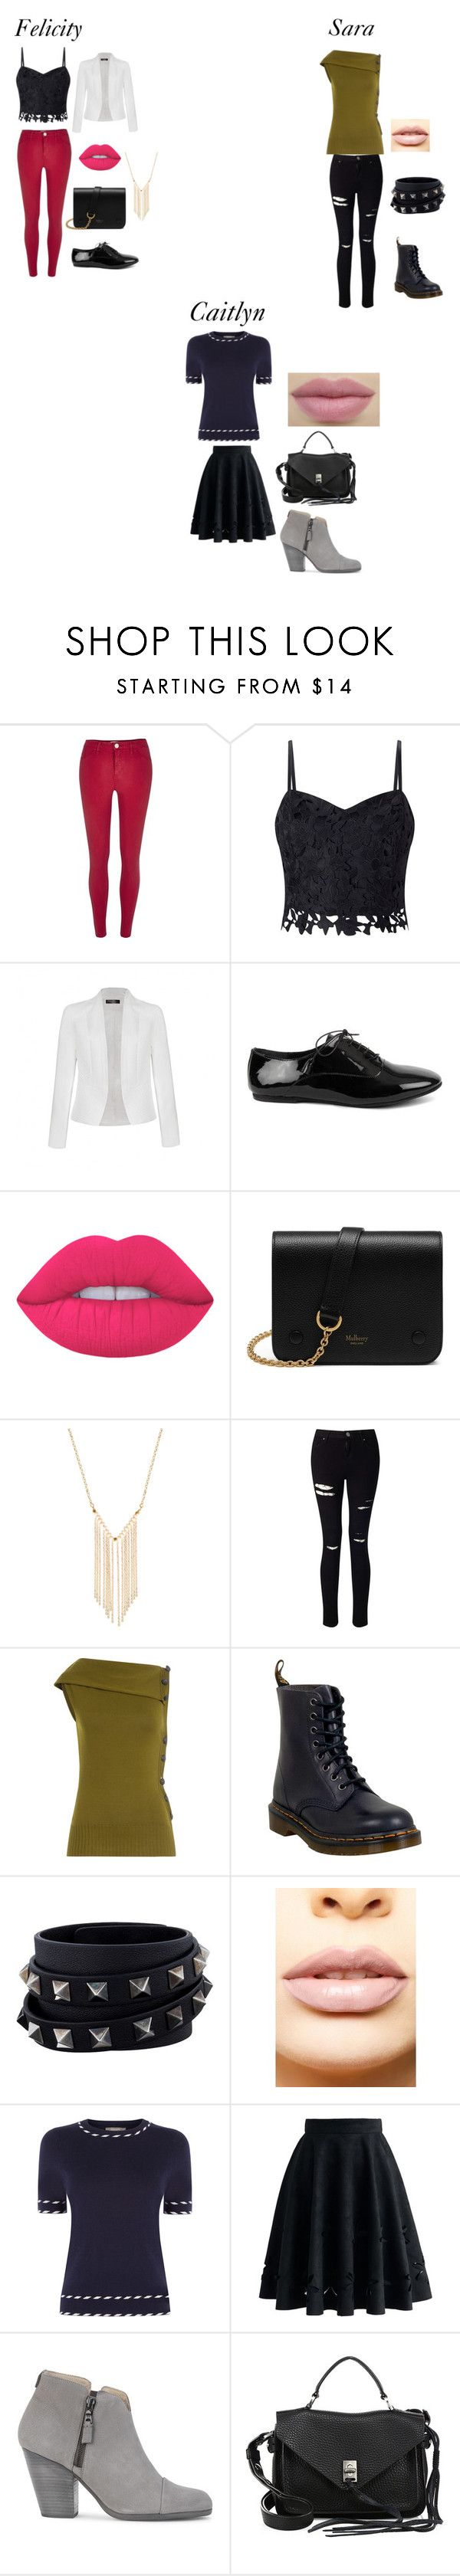 """""""Chapter 9 Truth Bombs"""" by sara-scott-i on Polyvore featuring River Island, Lipsy, Ally Fashion, Lime Crime, Mulberry, Gemelli, Miss Selfridge, Thierry Mugler, Dr. Martens and Valentino"""